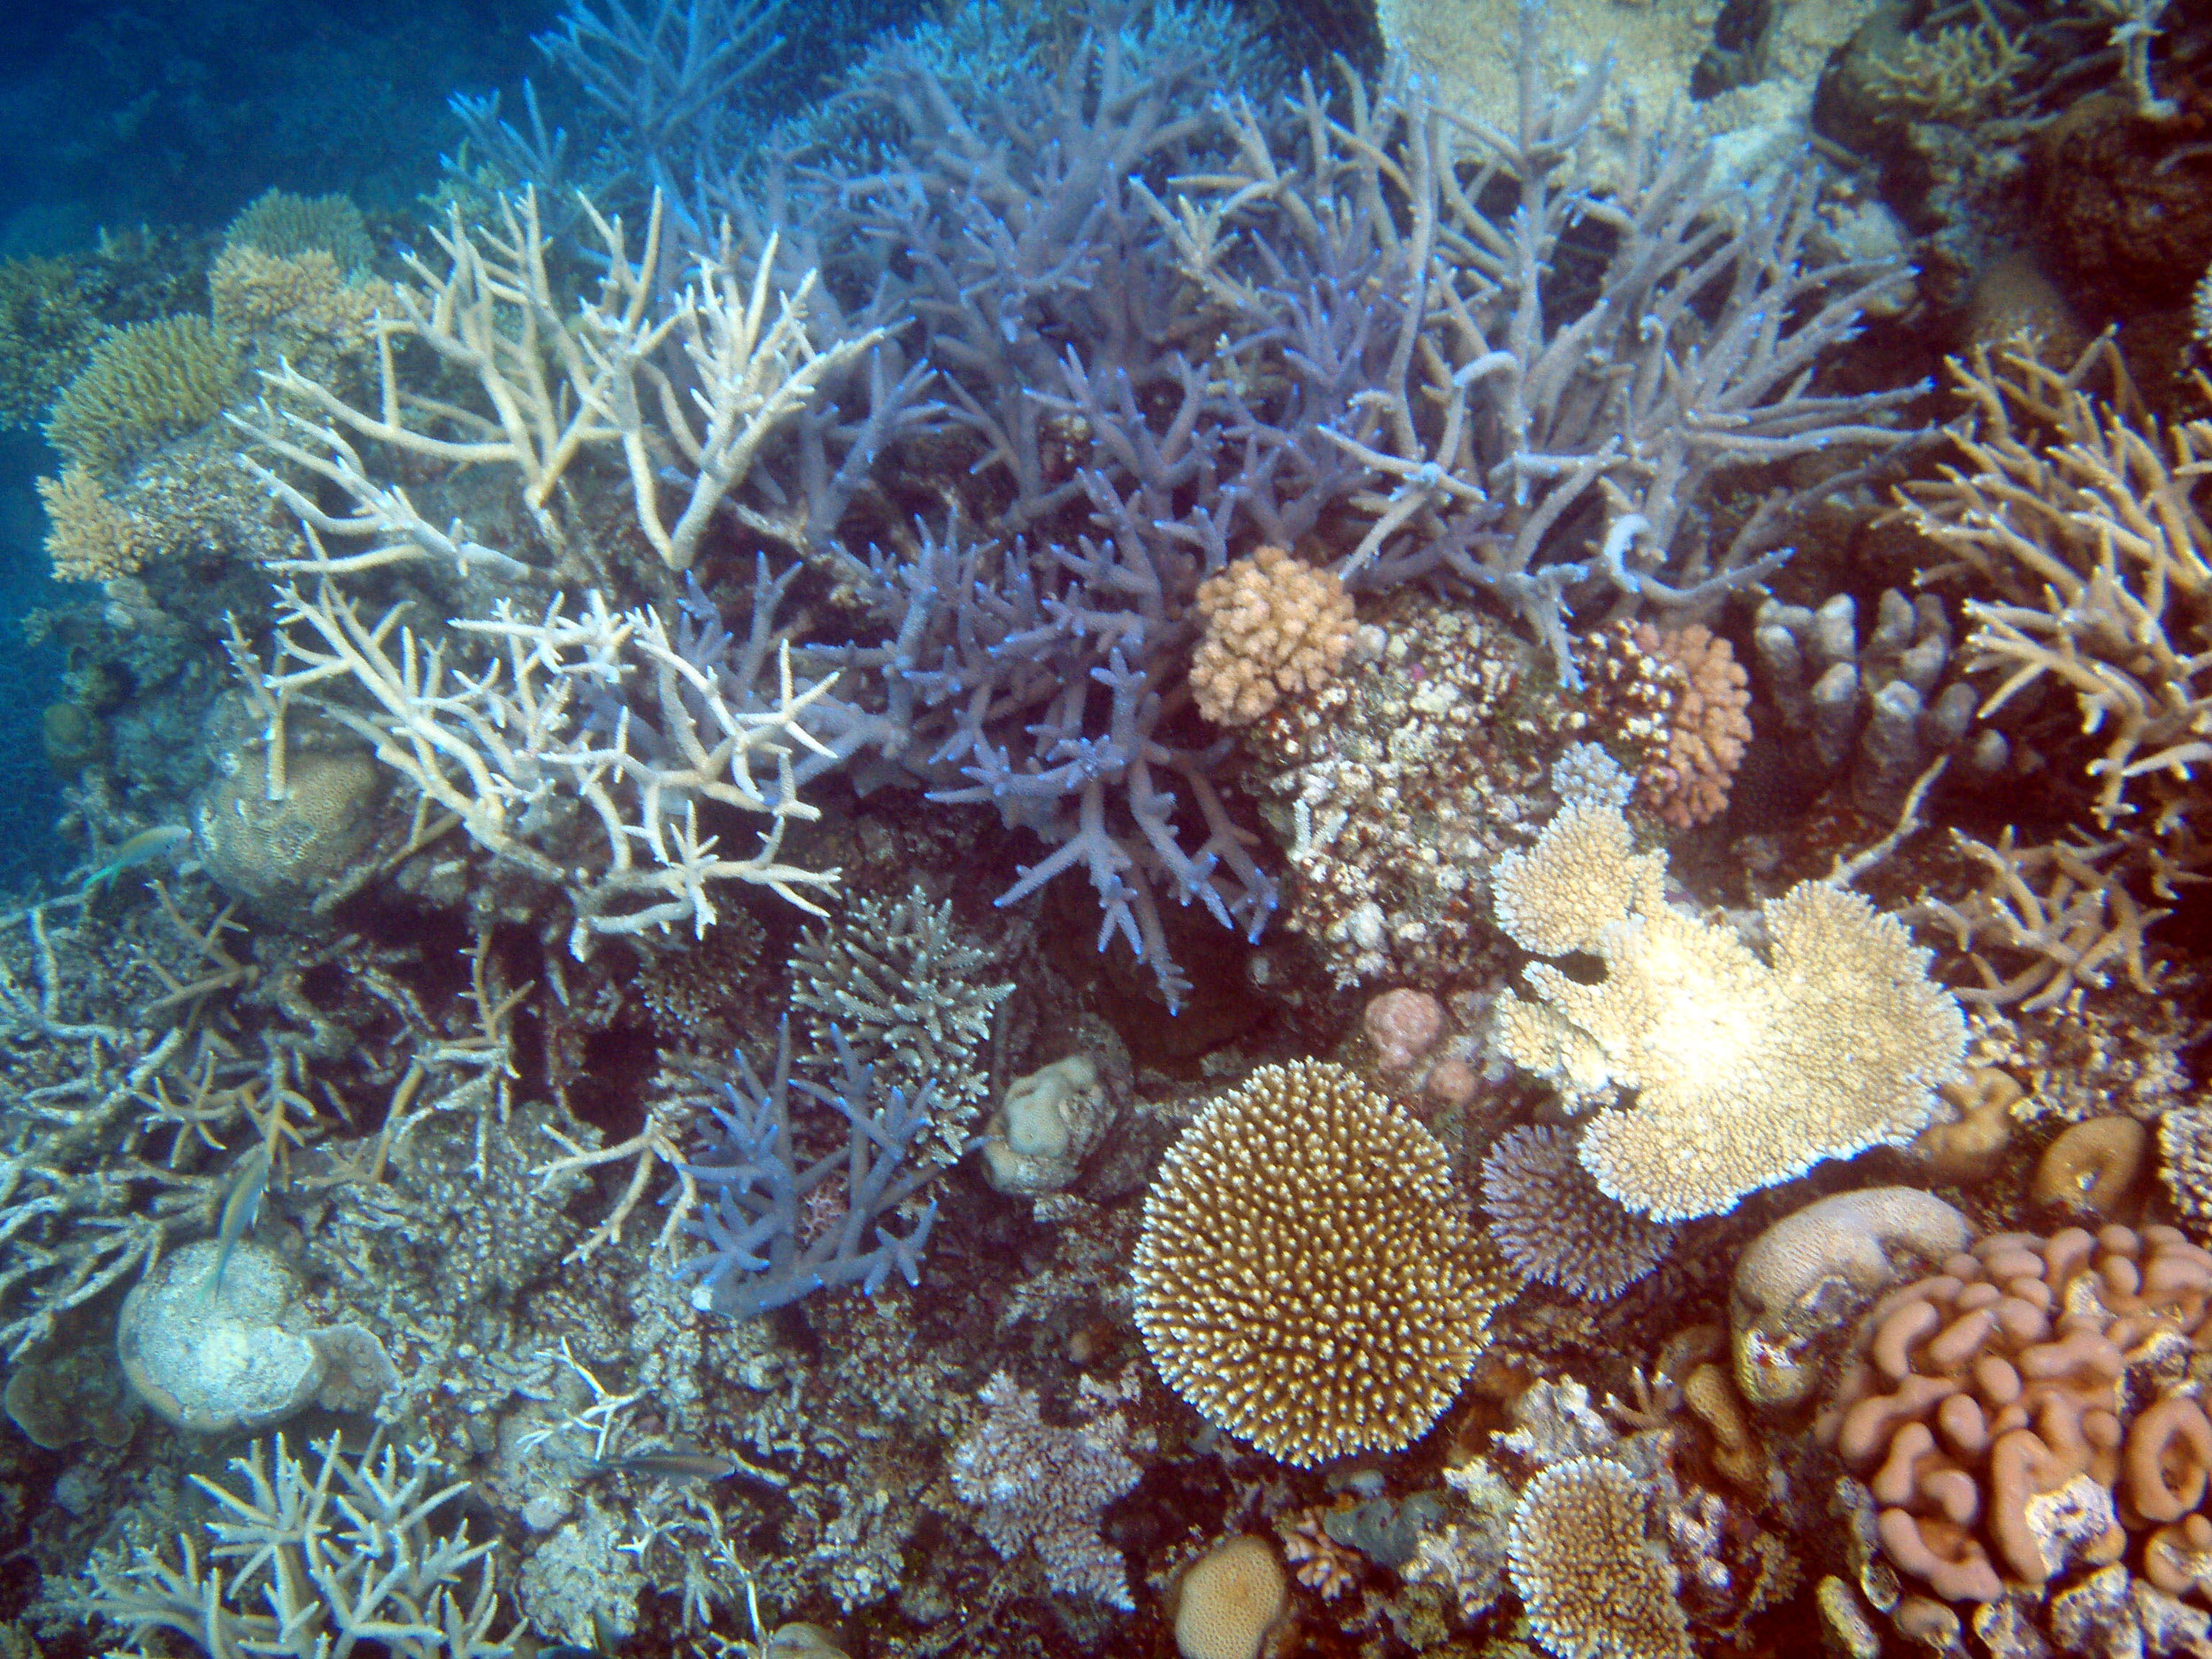 In vitro fertilization to save Great Barrier Reef and other coral reefs